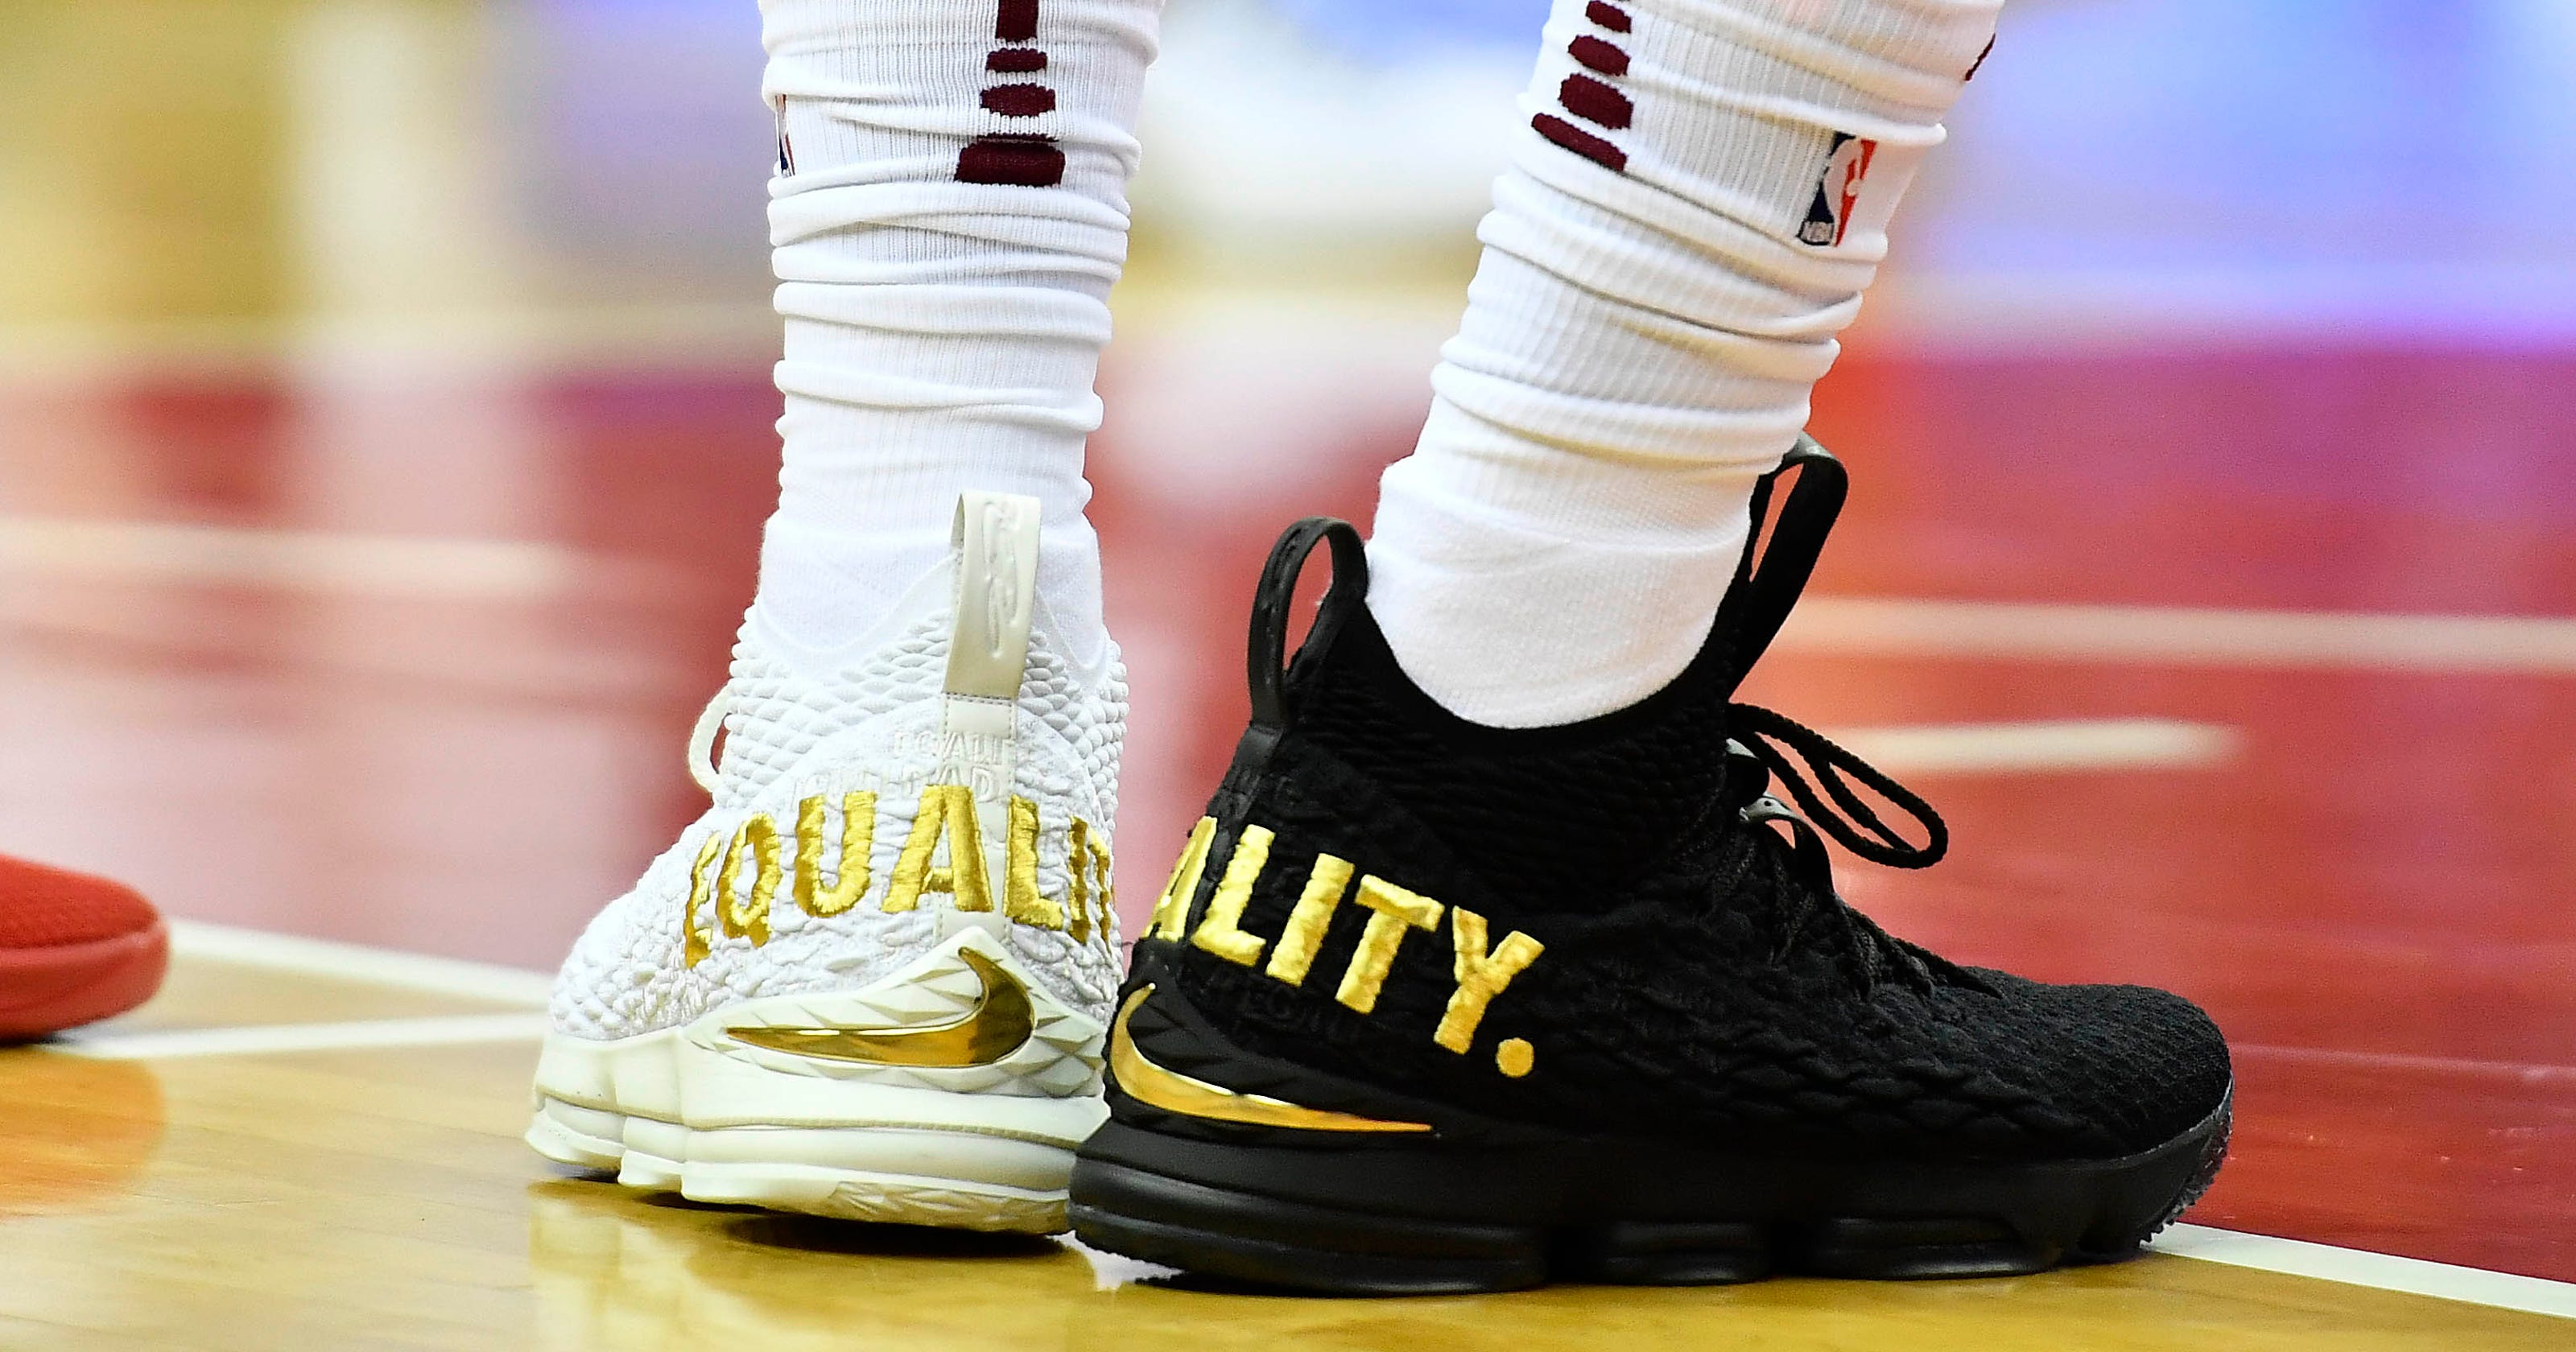 5c89ba36e7ace LeBron James makes statement with  Equality  sneakers worn in D.C.